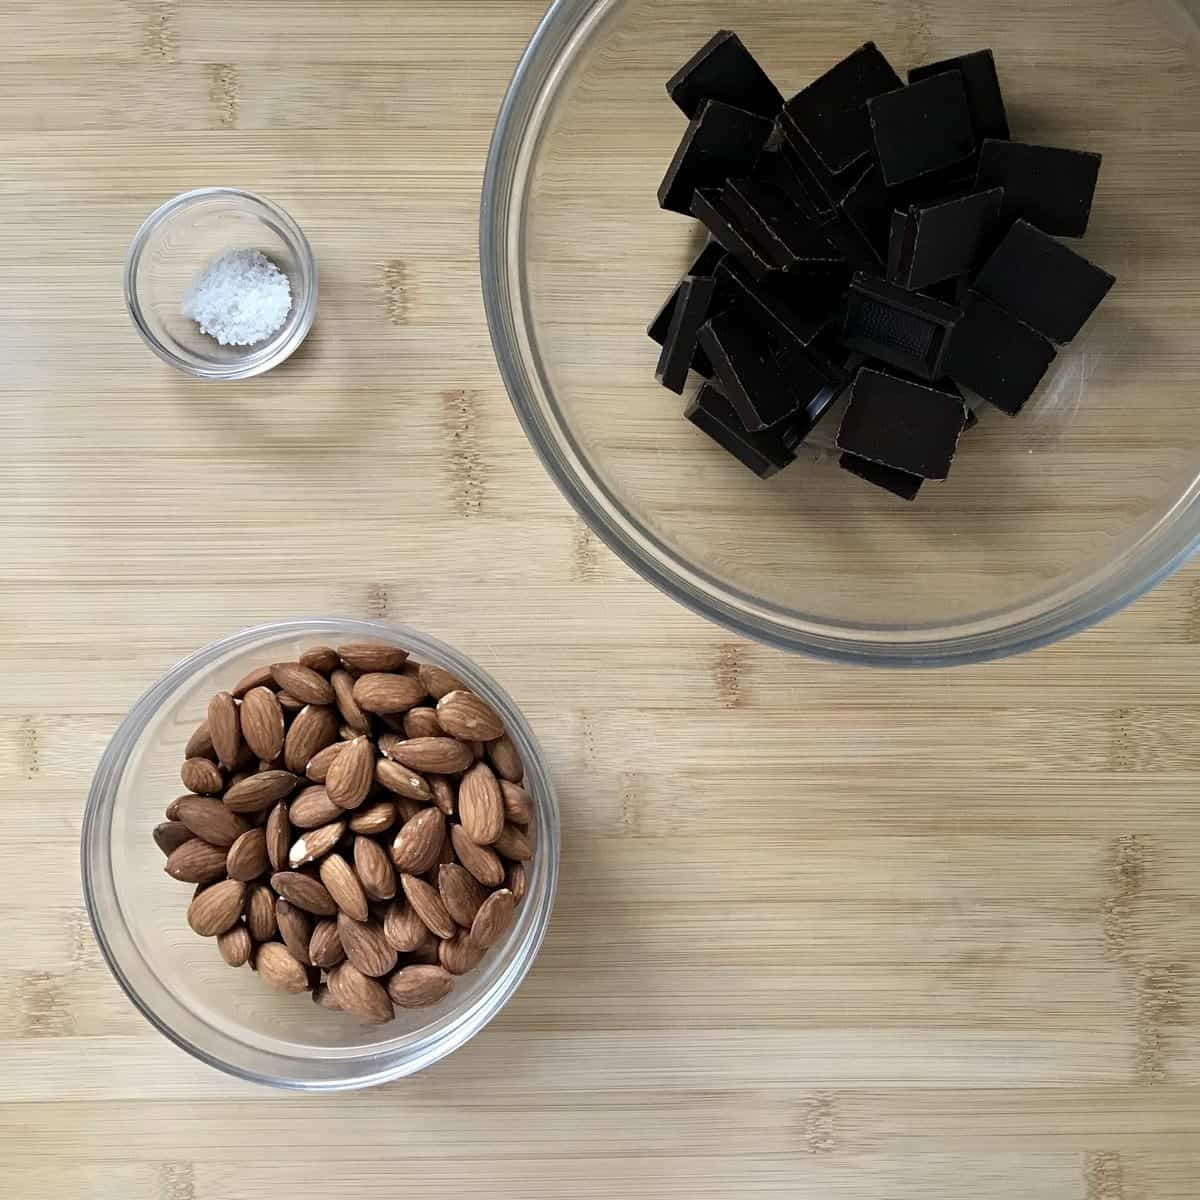 Chocolate, almonds and salt in separate bowls.